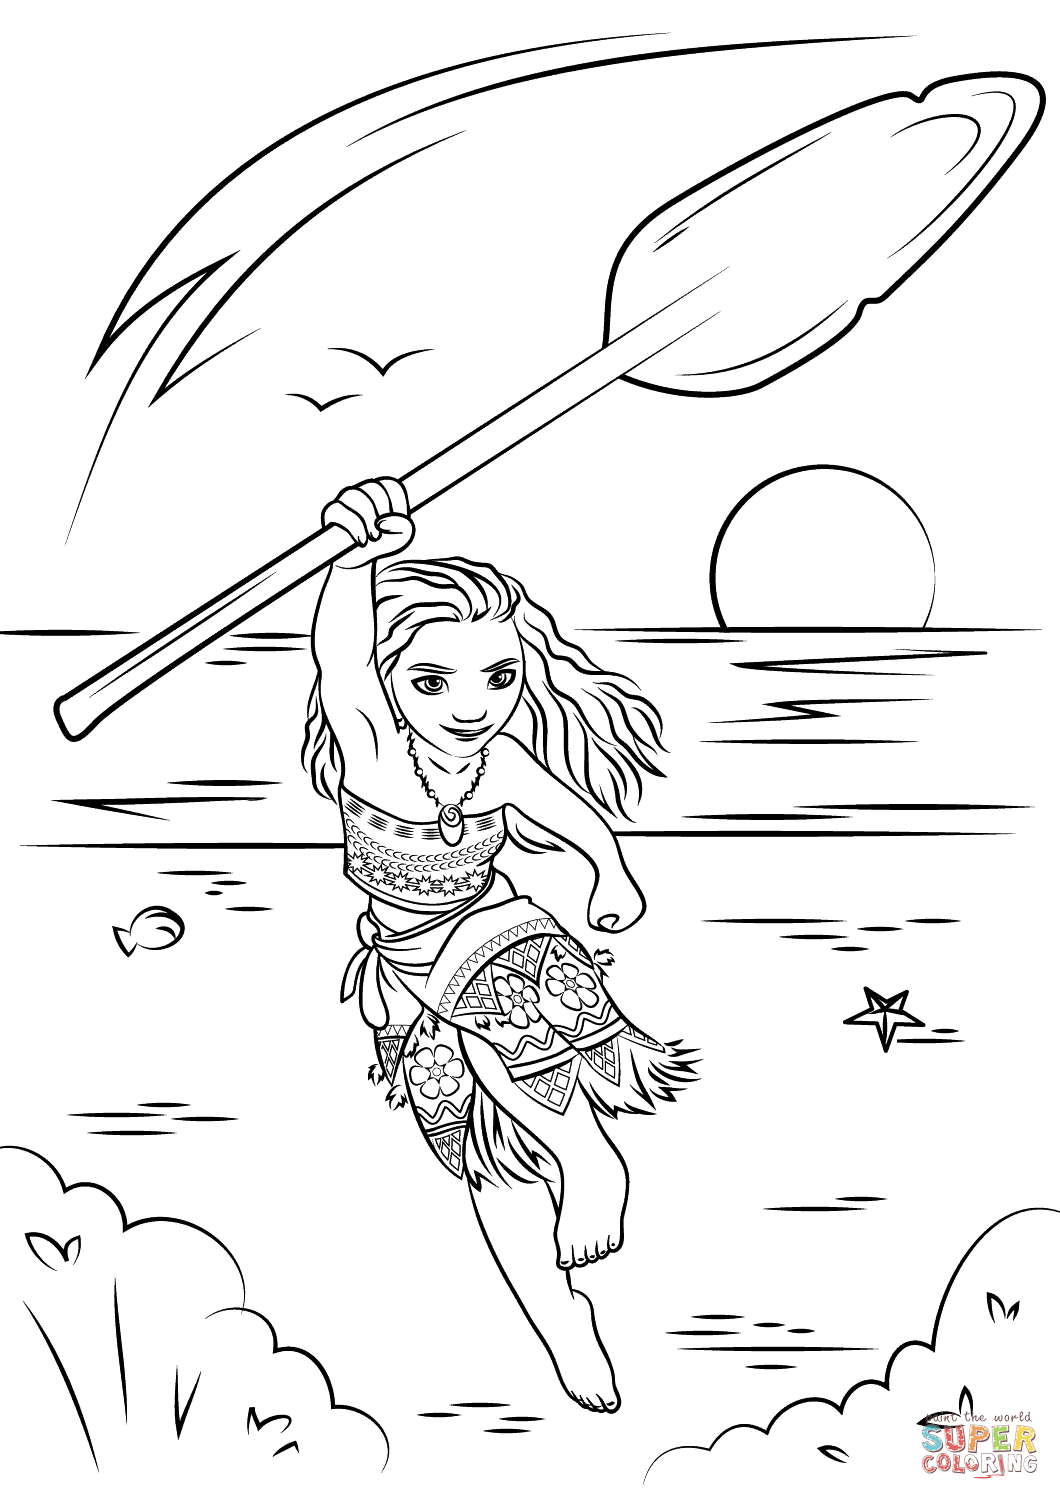 Moana from Moana Coloring Pages